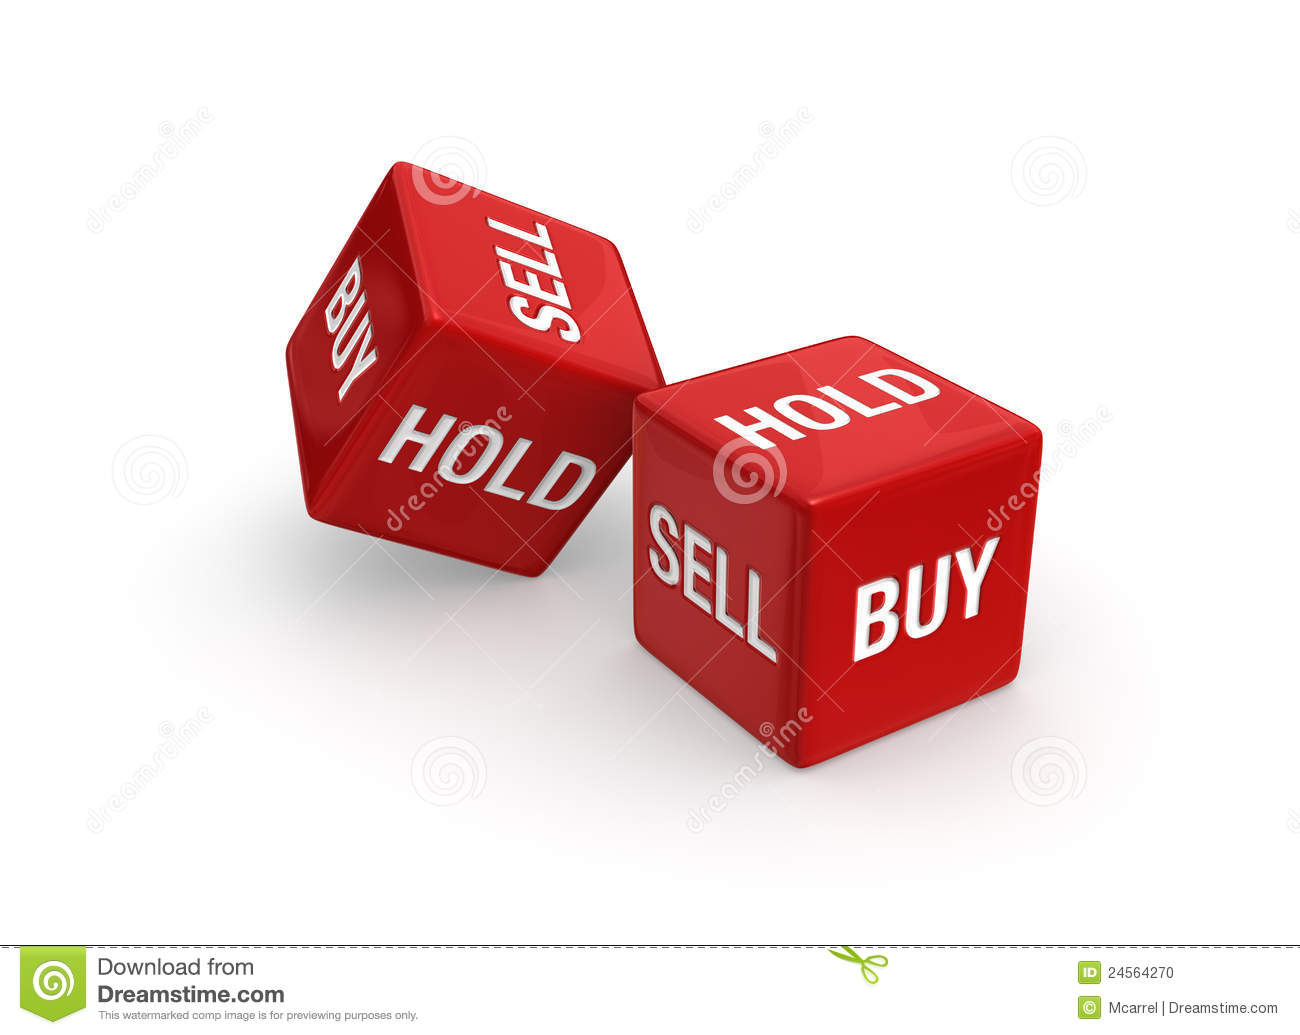 Photo-real illustration of Two red dice engraved with Buy, Sell, and ...: dreamstime.com/stock-photo-buy-sell-image24564270